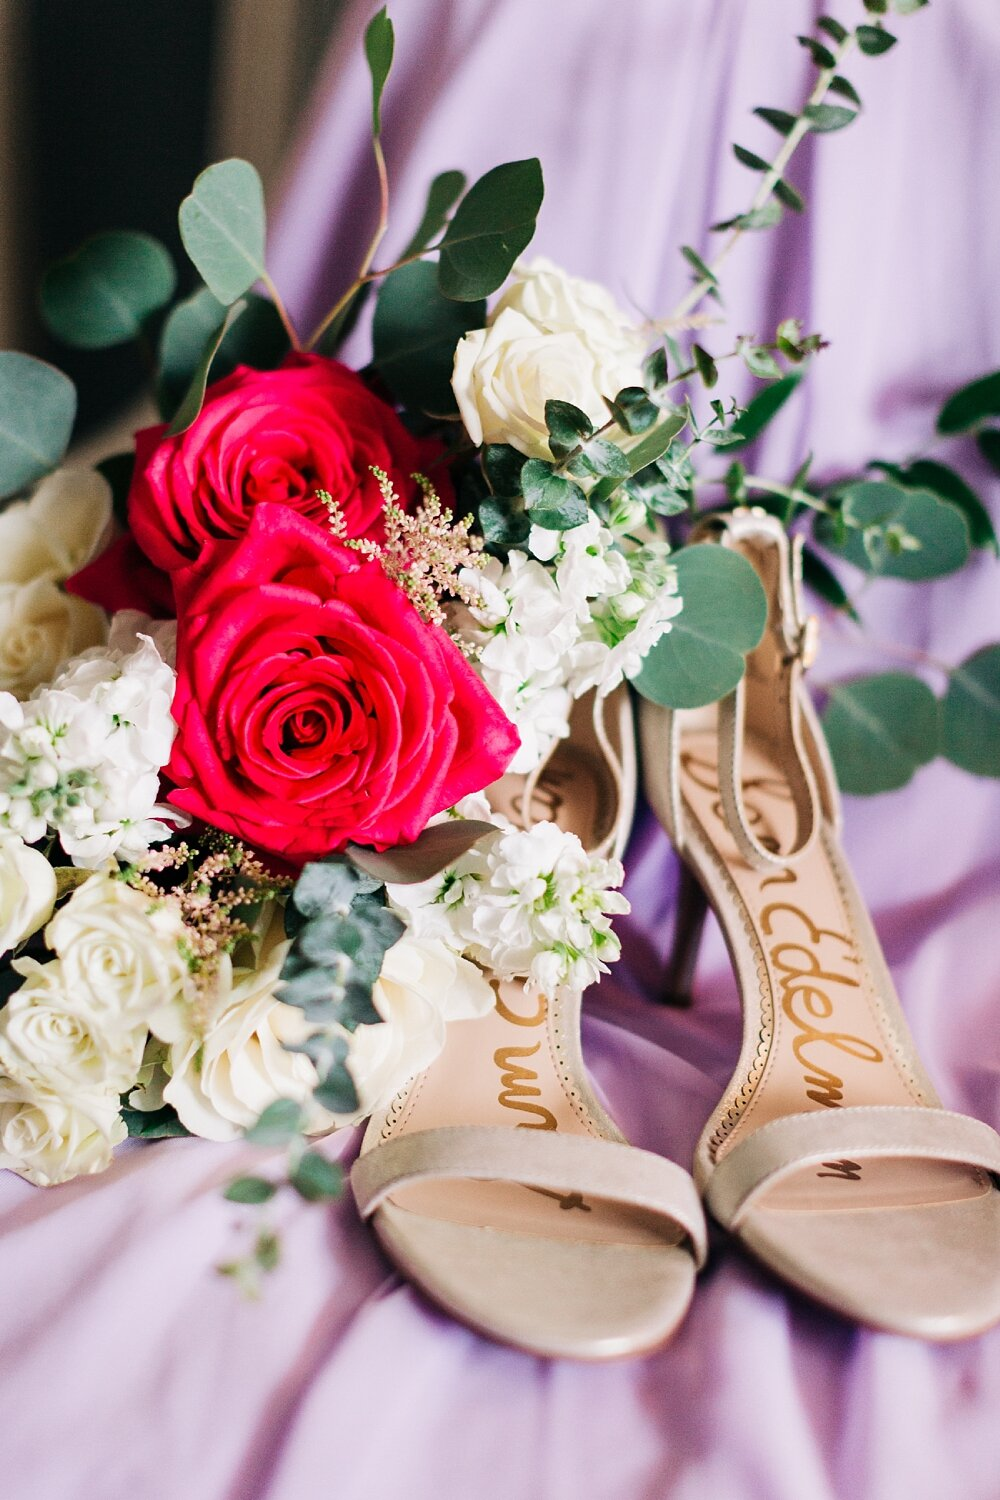 bride's shoes and bouquet on a purple bridesmaid dress